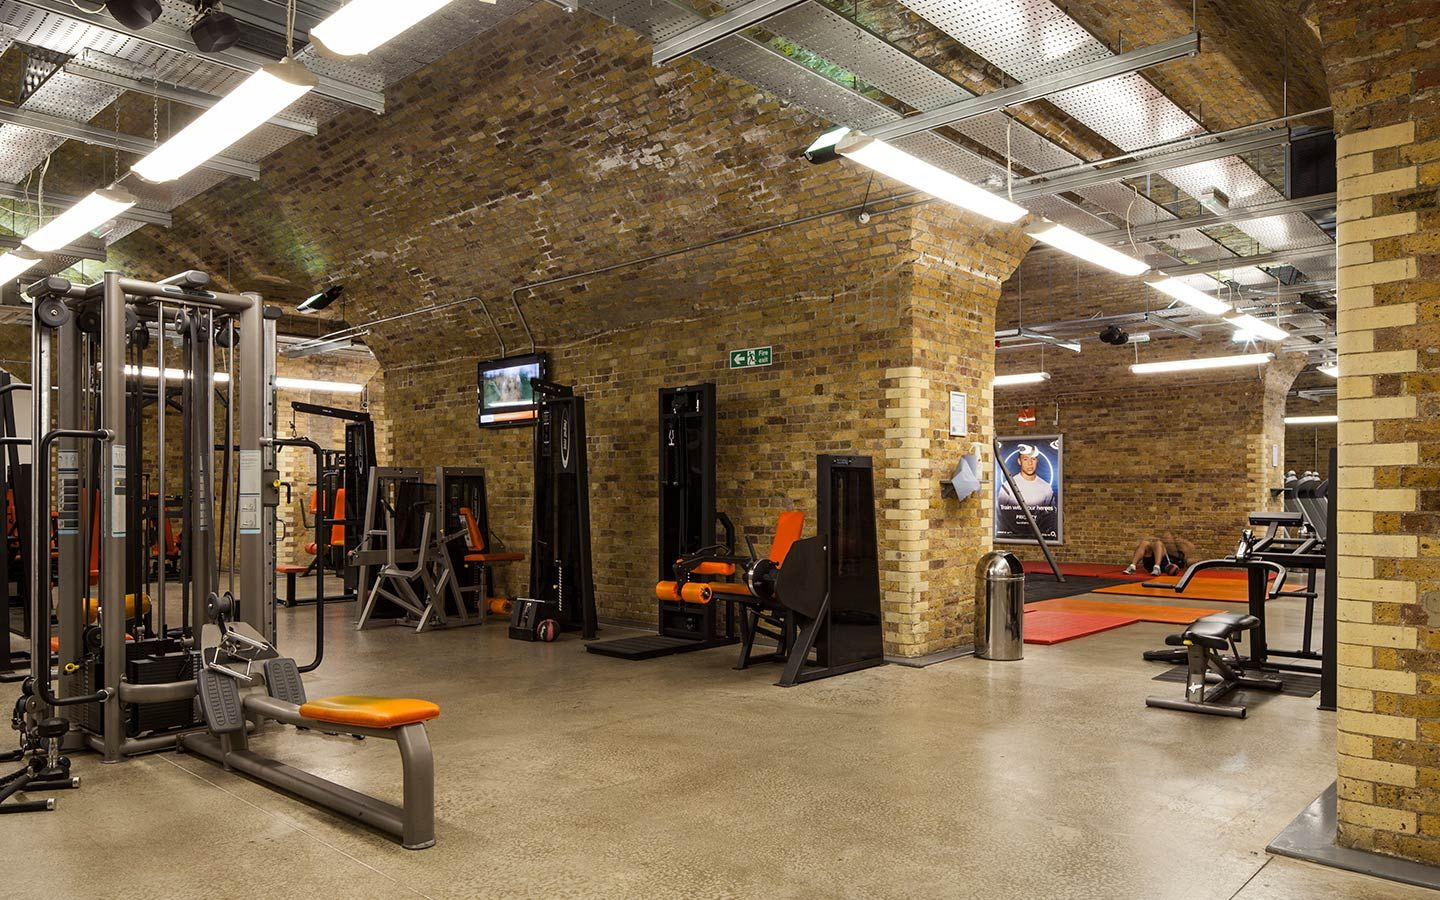 Sea design group fitness for less architectural consultancy gym interior design